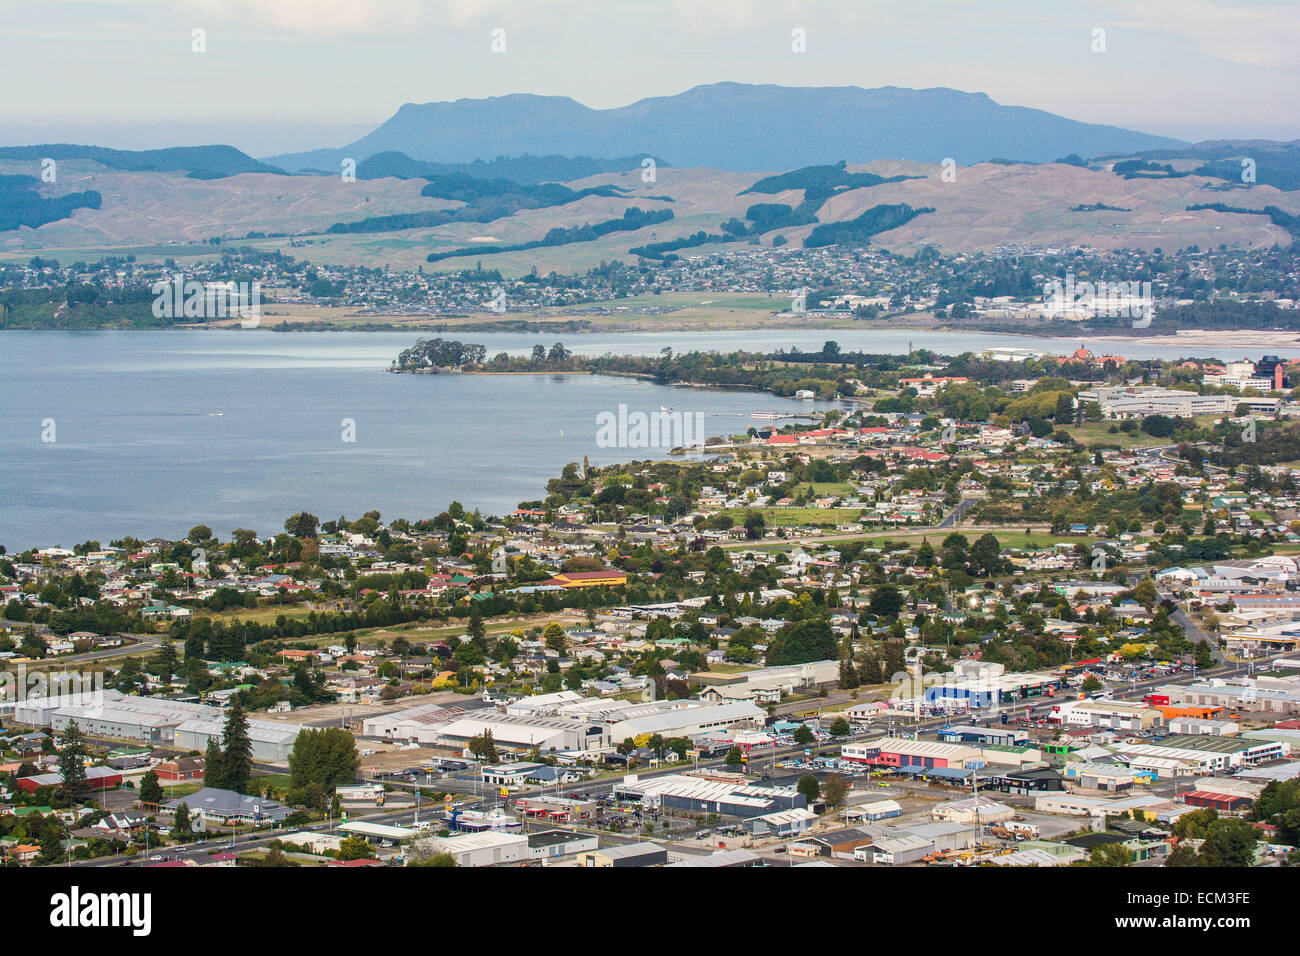 Rotorua New Zealand City High Resolution Stock Photography And Images Alamy